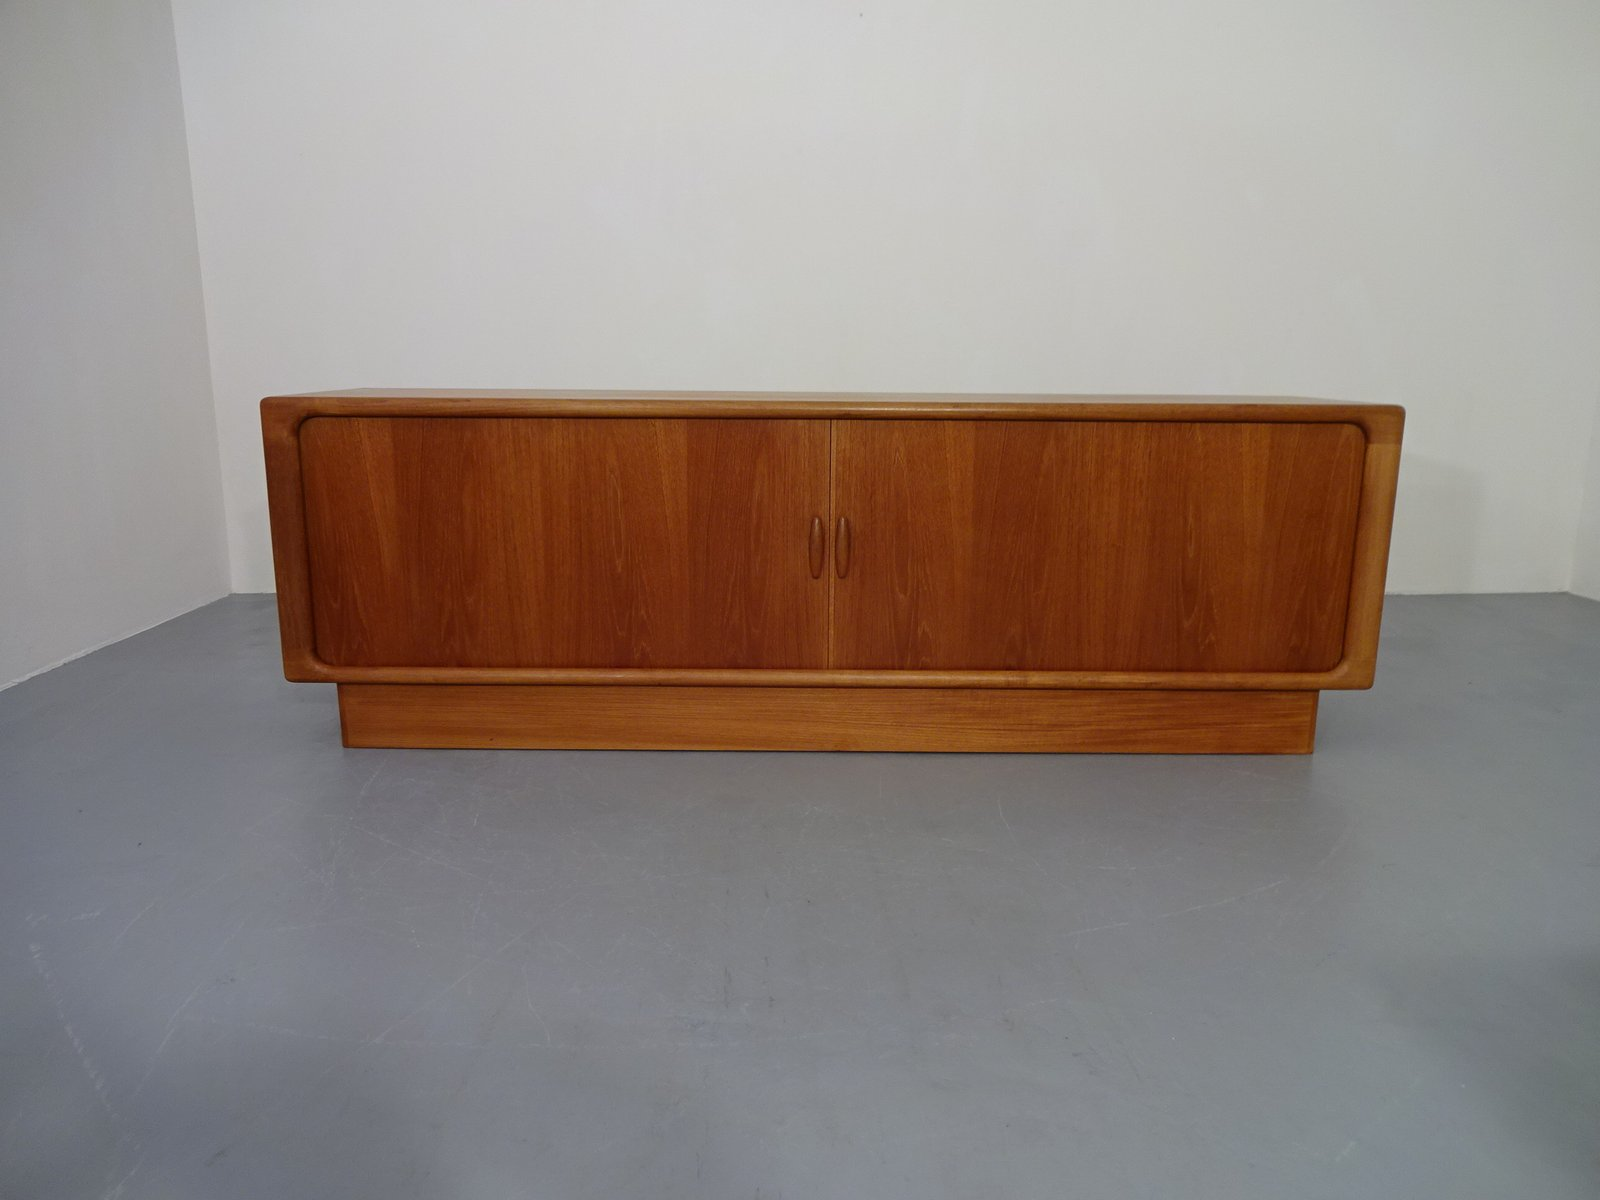 d nisches sideboard aus teak von dyrlund 1960er bei pamono kaufen. Black Bedroom Furniture Sets. Home Design Ideas